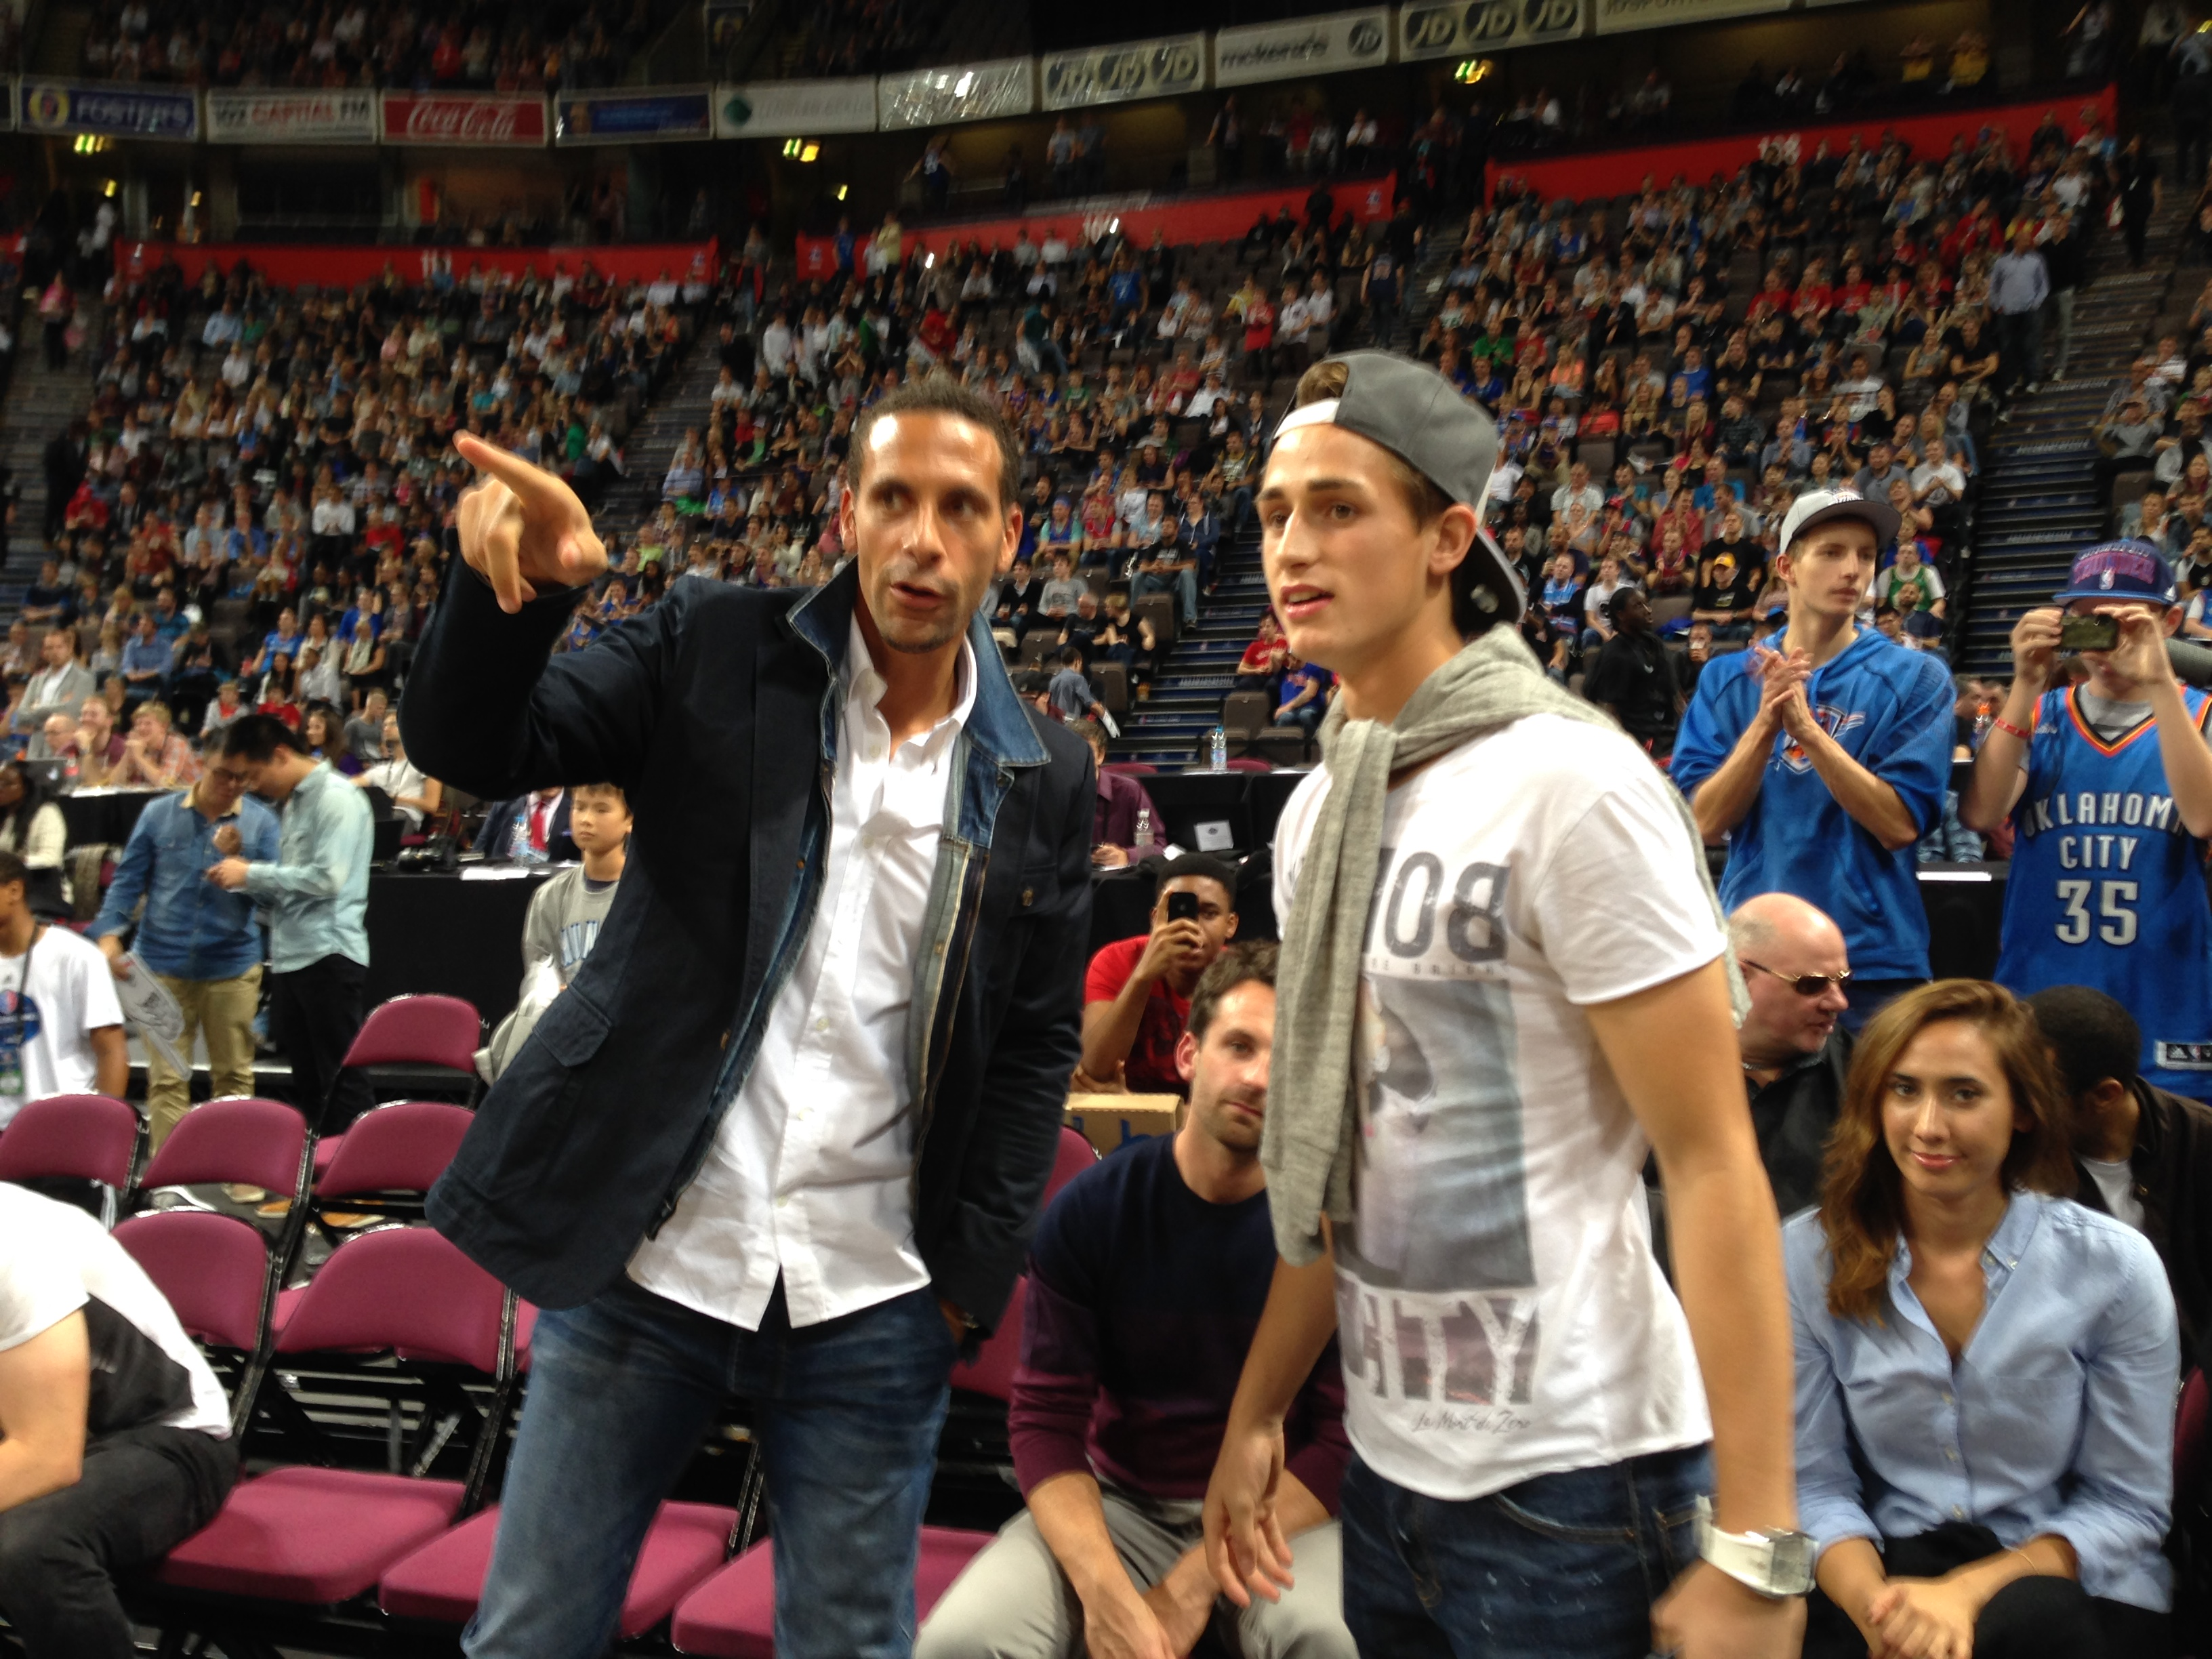 Manchester United stars Adnan Januzaj, Rio Ferdinand, David De Gea and Darren Fletcher soak up atmosphere at NBA pre-season game in Manchester